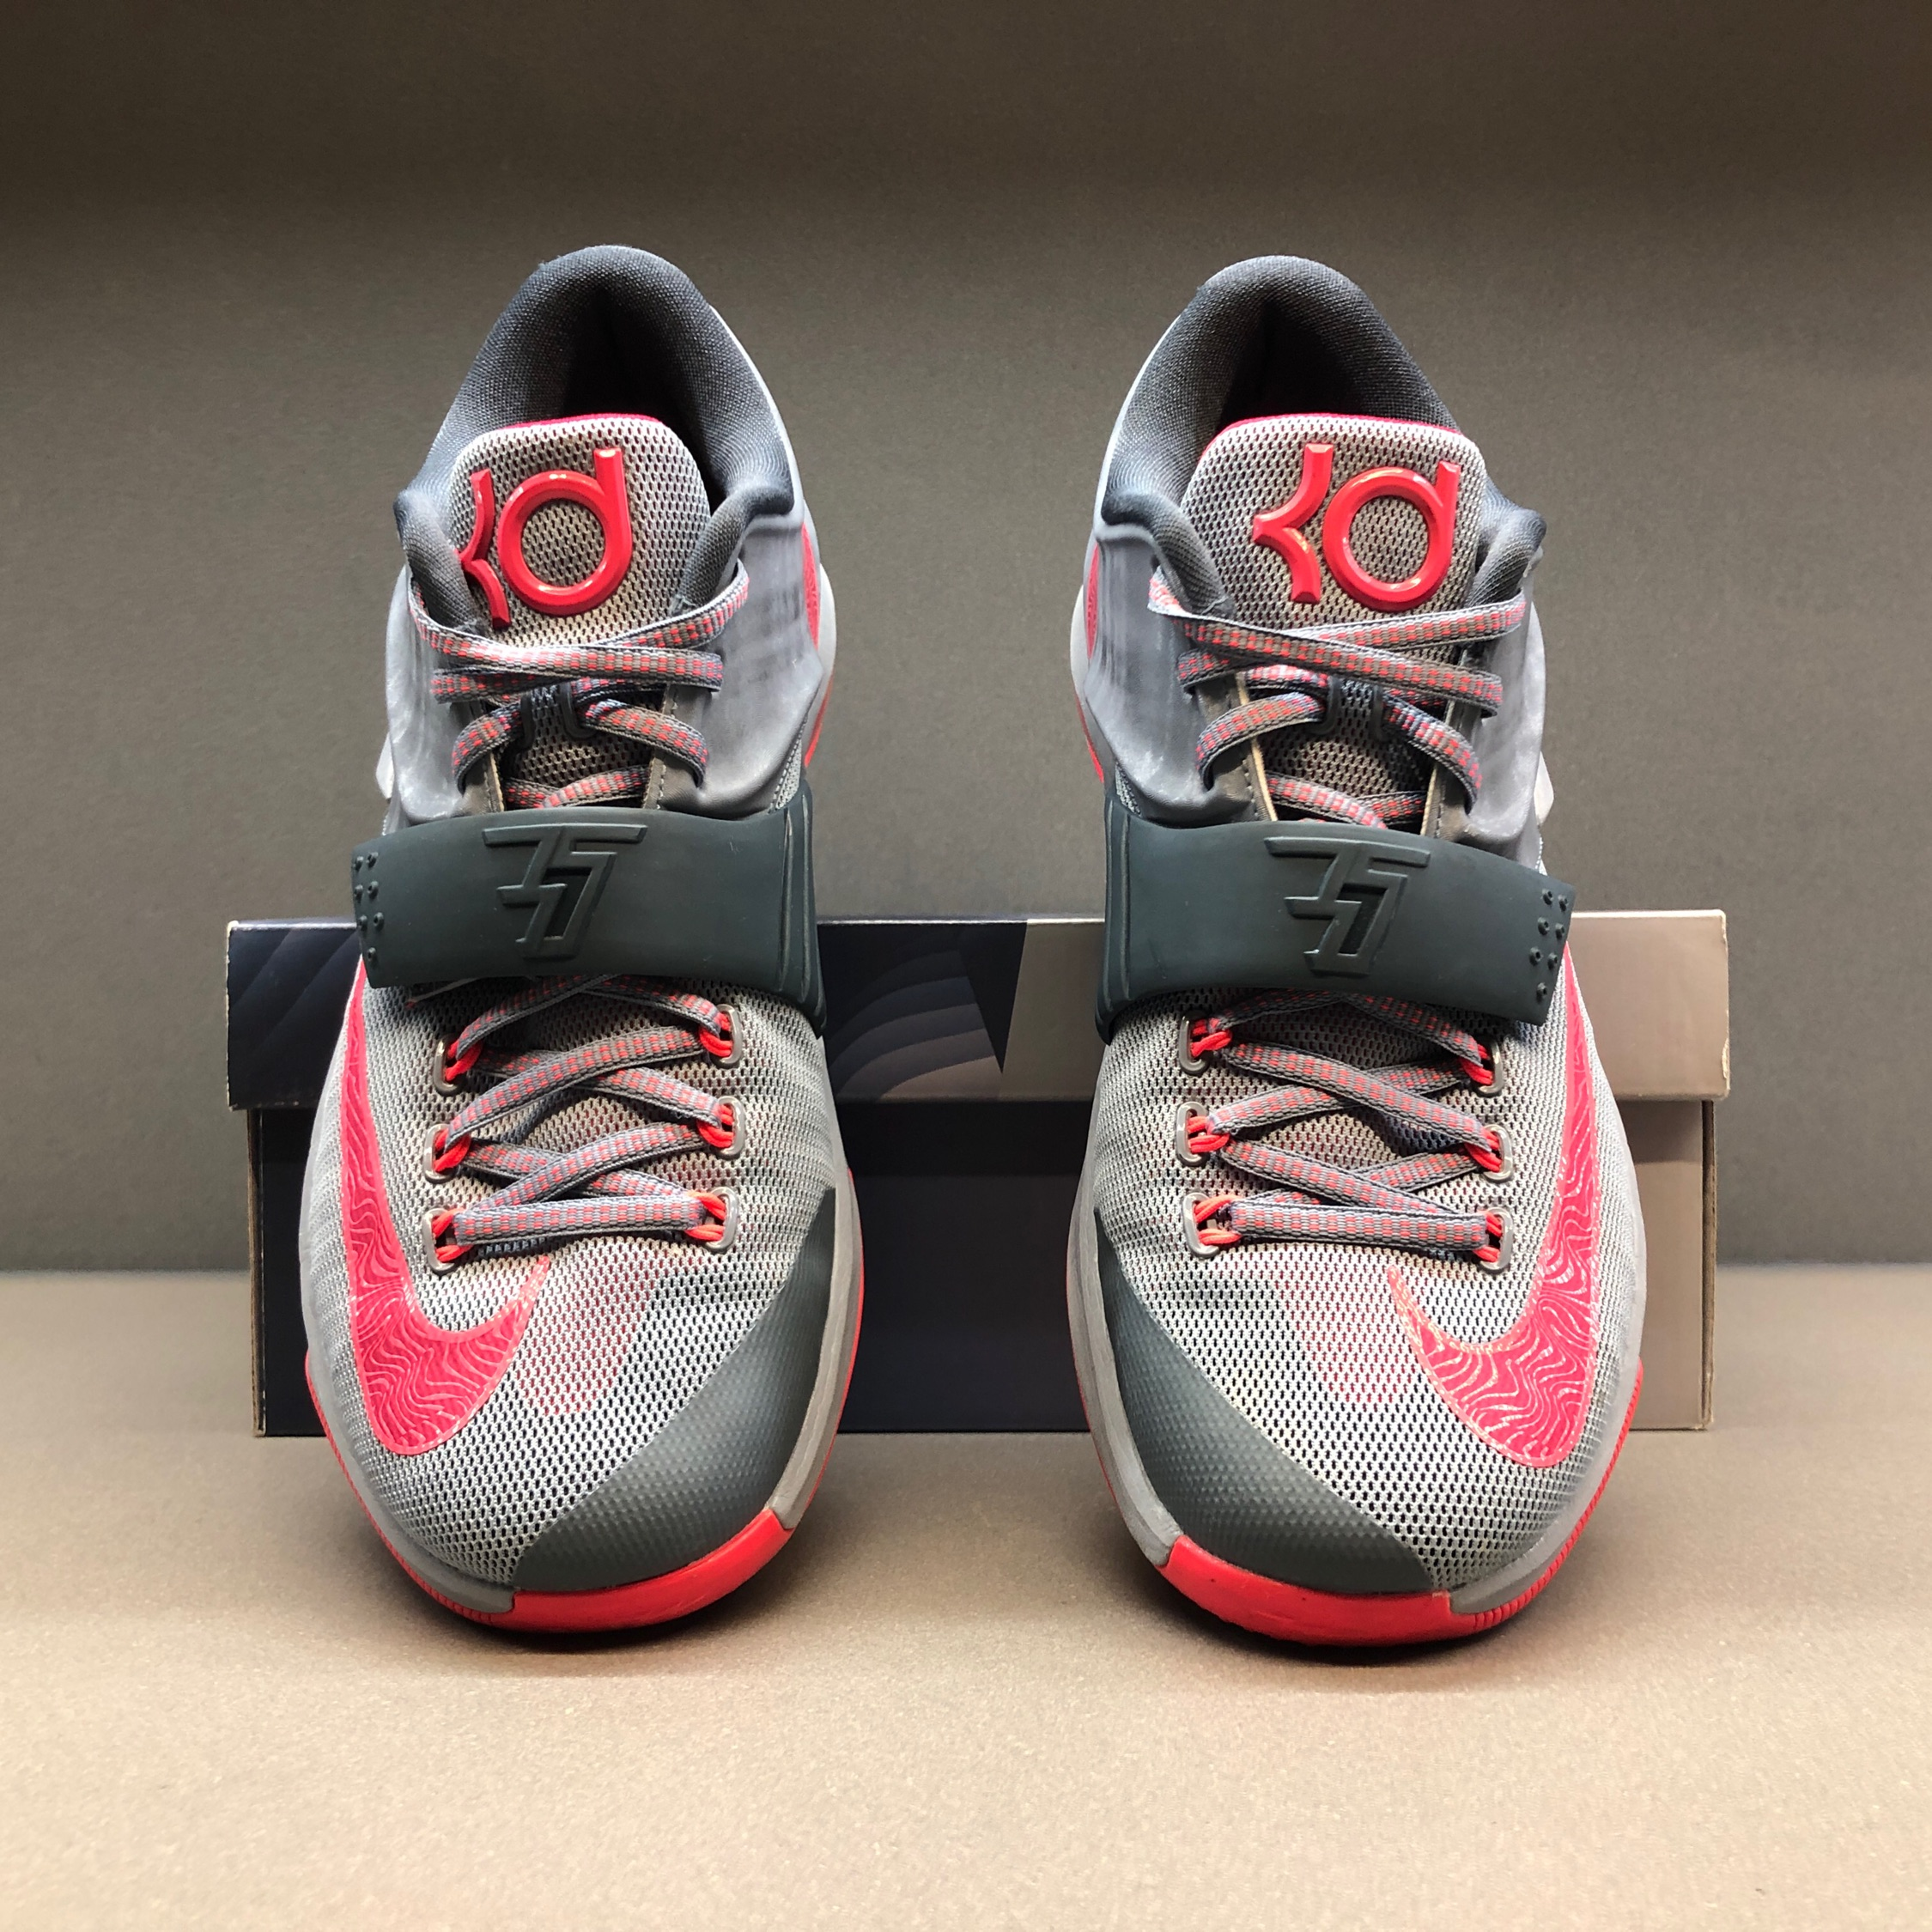 1ffdf5a5182c Nike Kd7 Calm Before The Storm